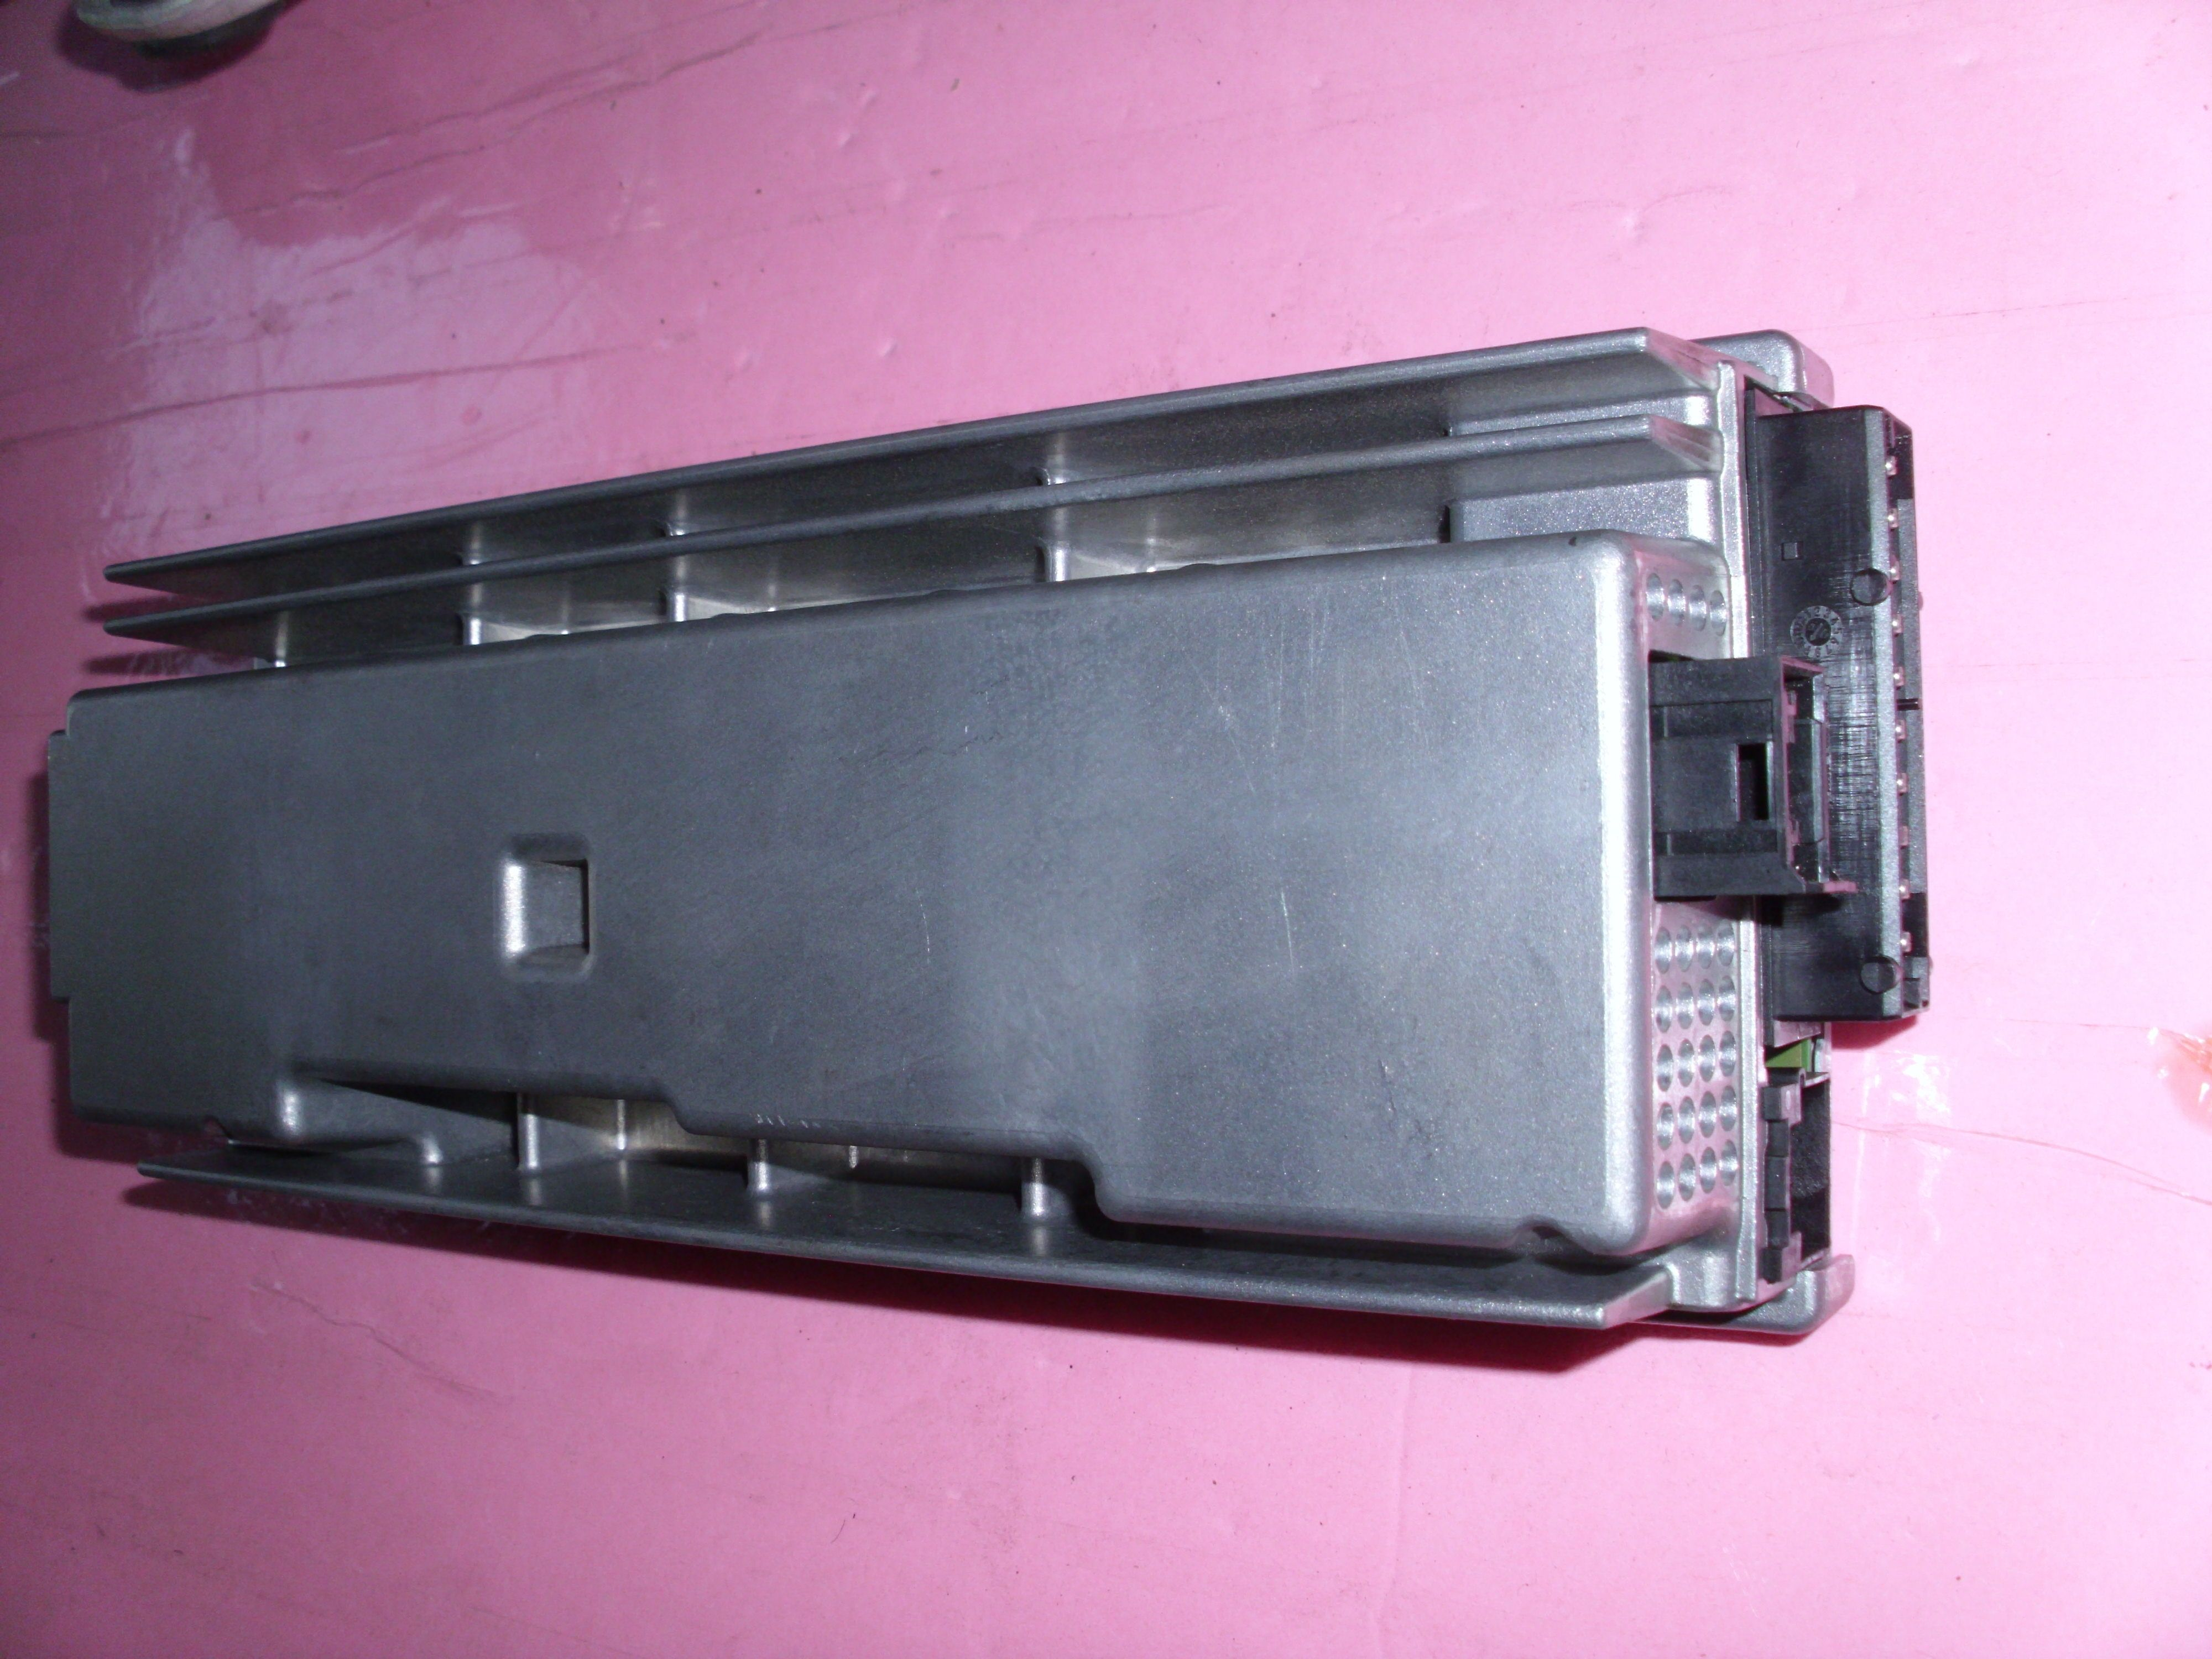 This amplifier amp is for 2000 bmw x3 please compare the part number s